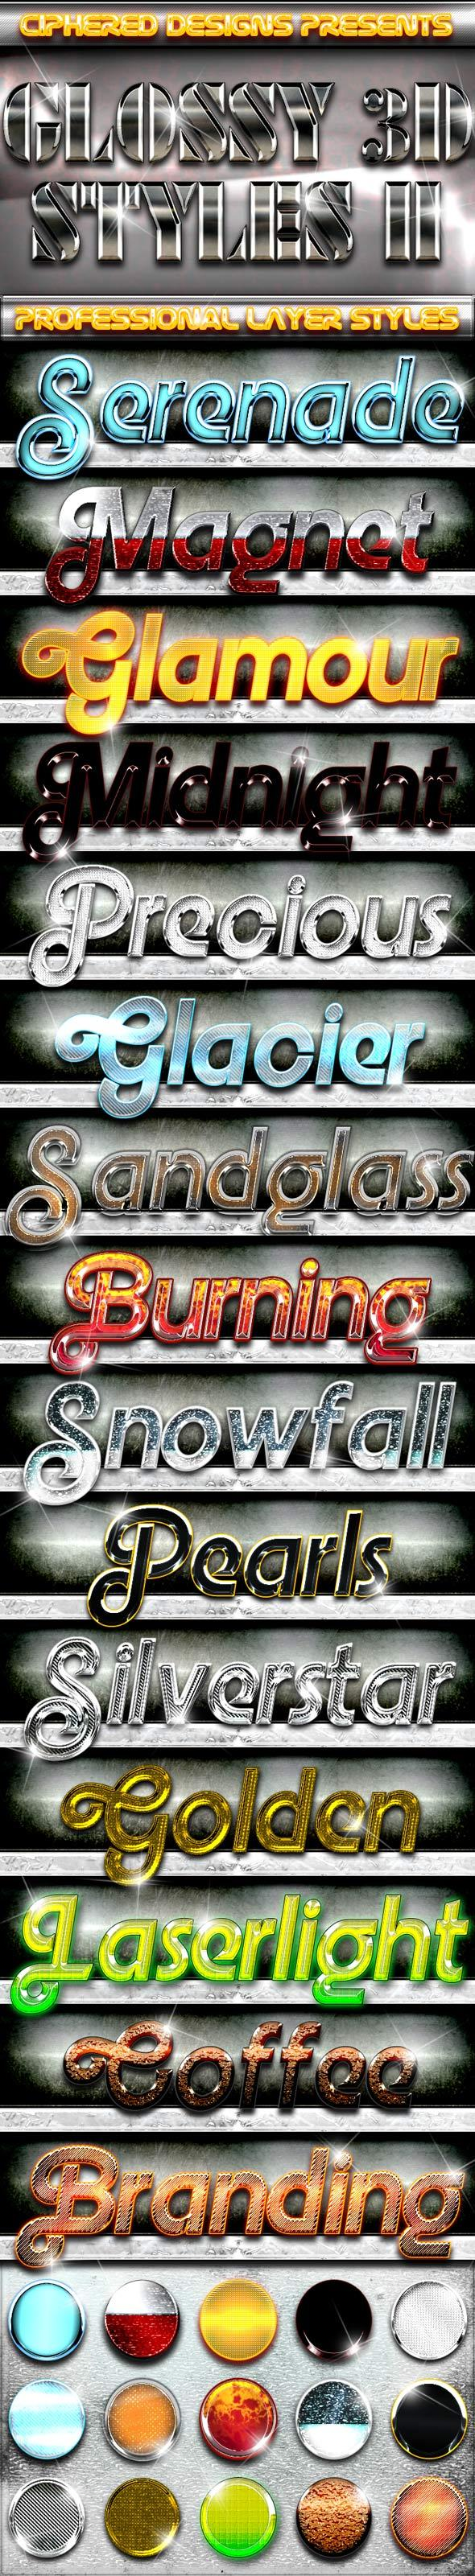 Glossy 3D Styles II - Professional Layer Styles - Text Effects Styles